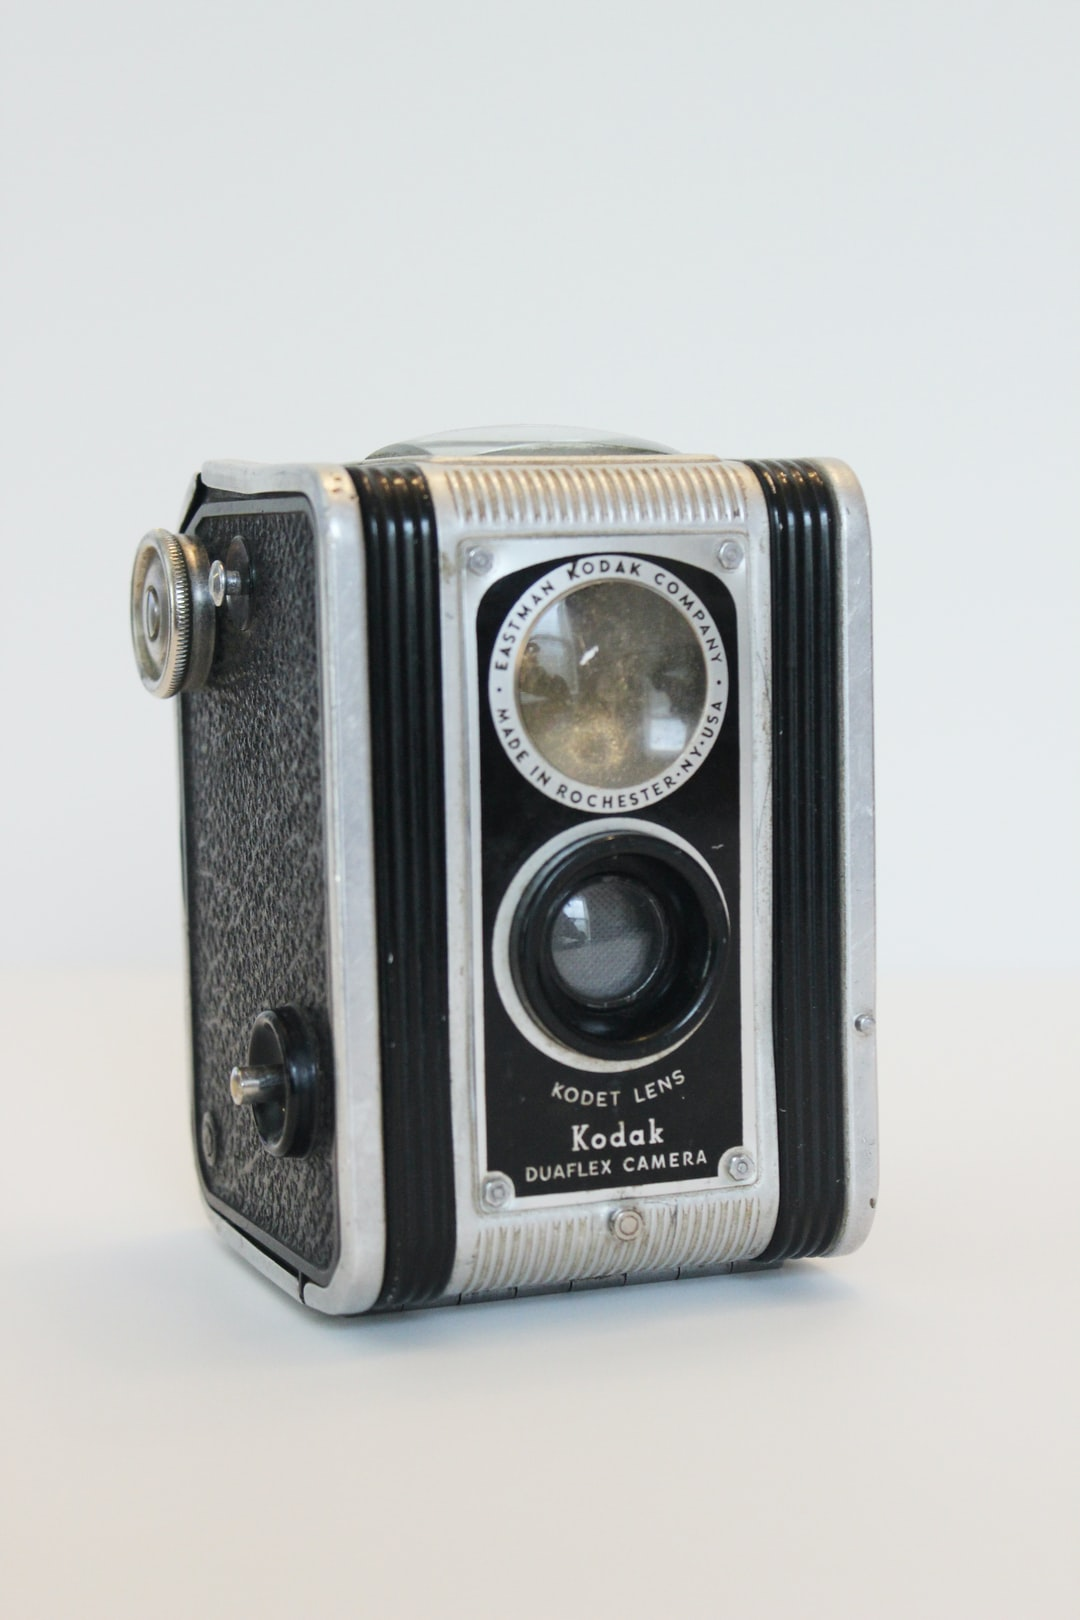 Vintage Kodak Duaflex Camera on gray background.